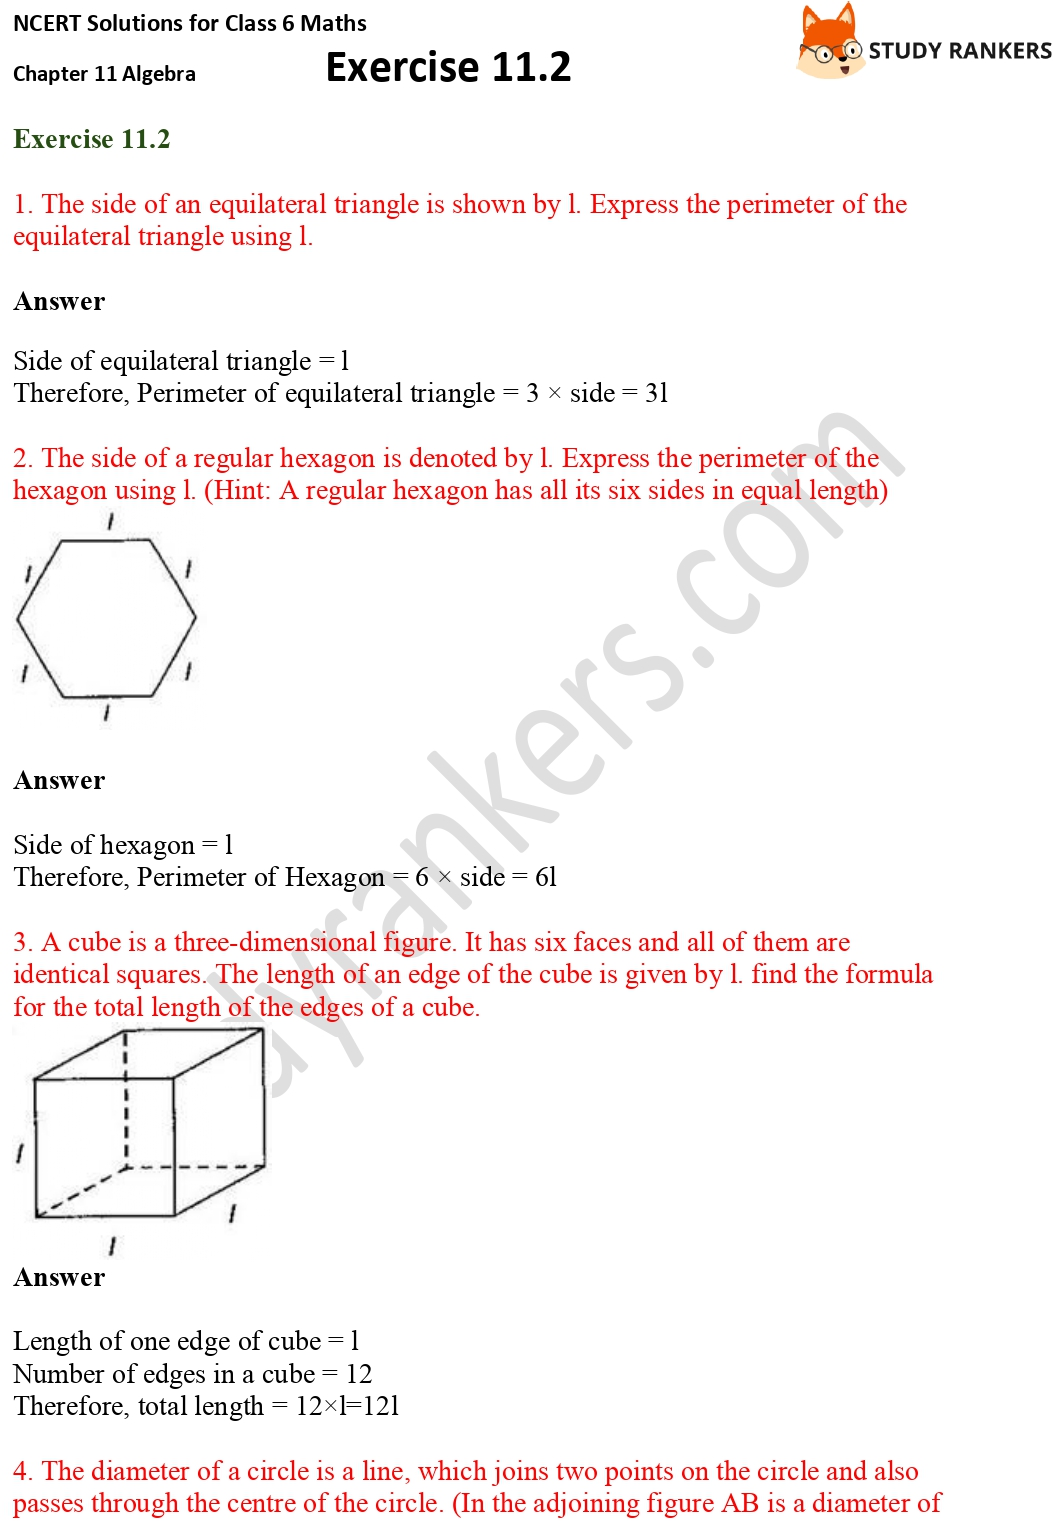 NCERT Solutions for Class 6 Maths Chapter 11 Algebra Exercise 11.2 Part 1